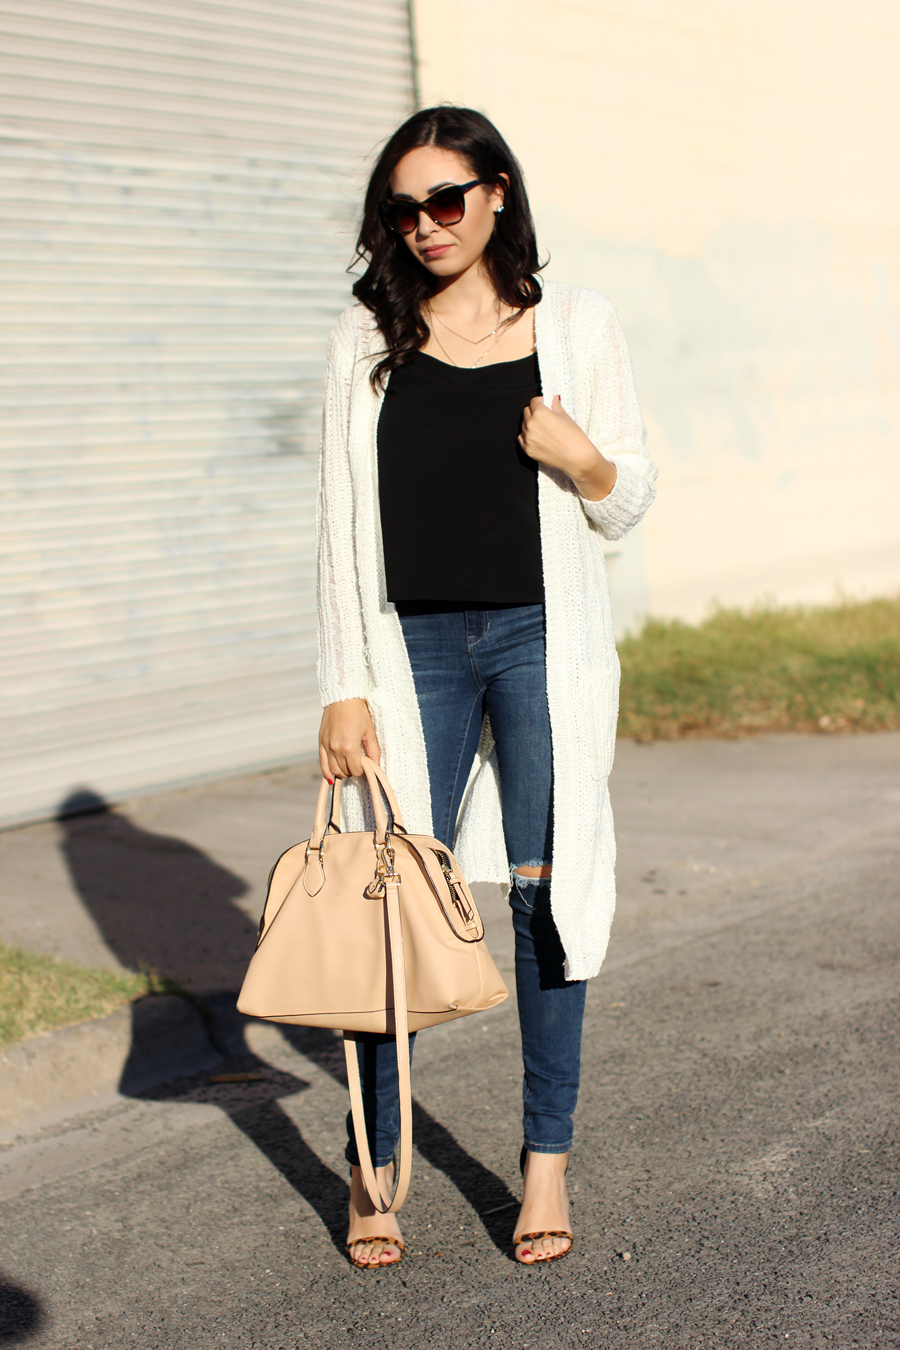 FTT-SHOP-PINK-BLUSH-RIPPED-JEANS-DUSTER-CARDIGAN-CASUAL3